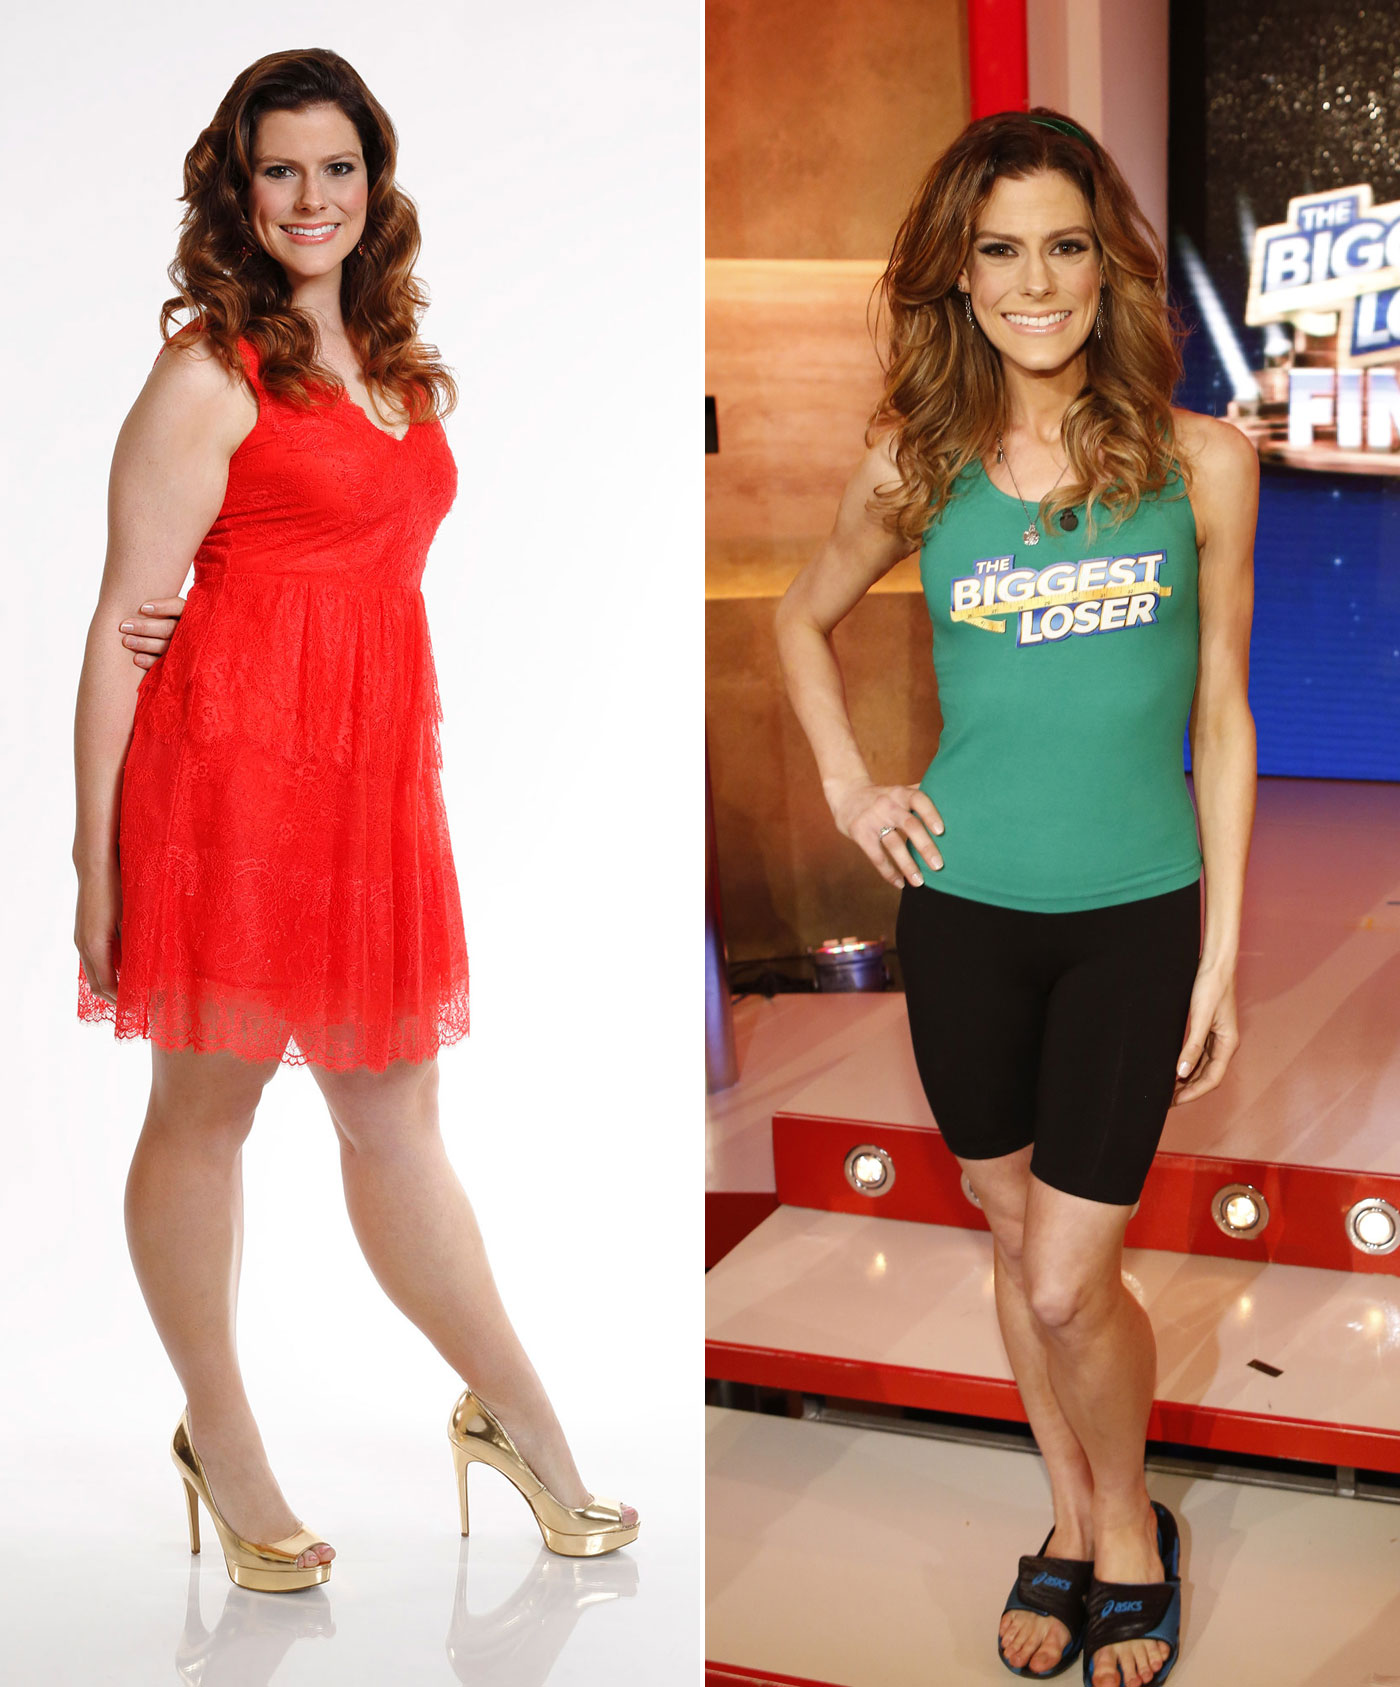 Did the 'Biggest Loser' lose too much?